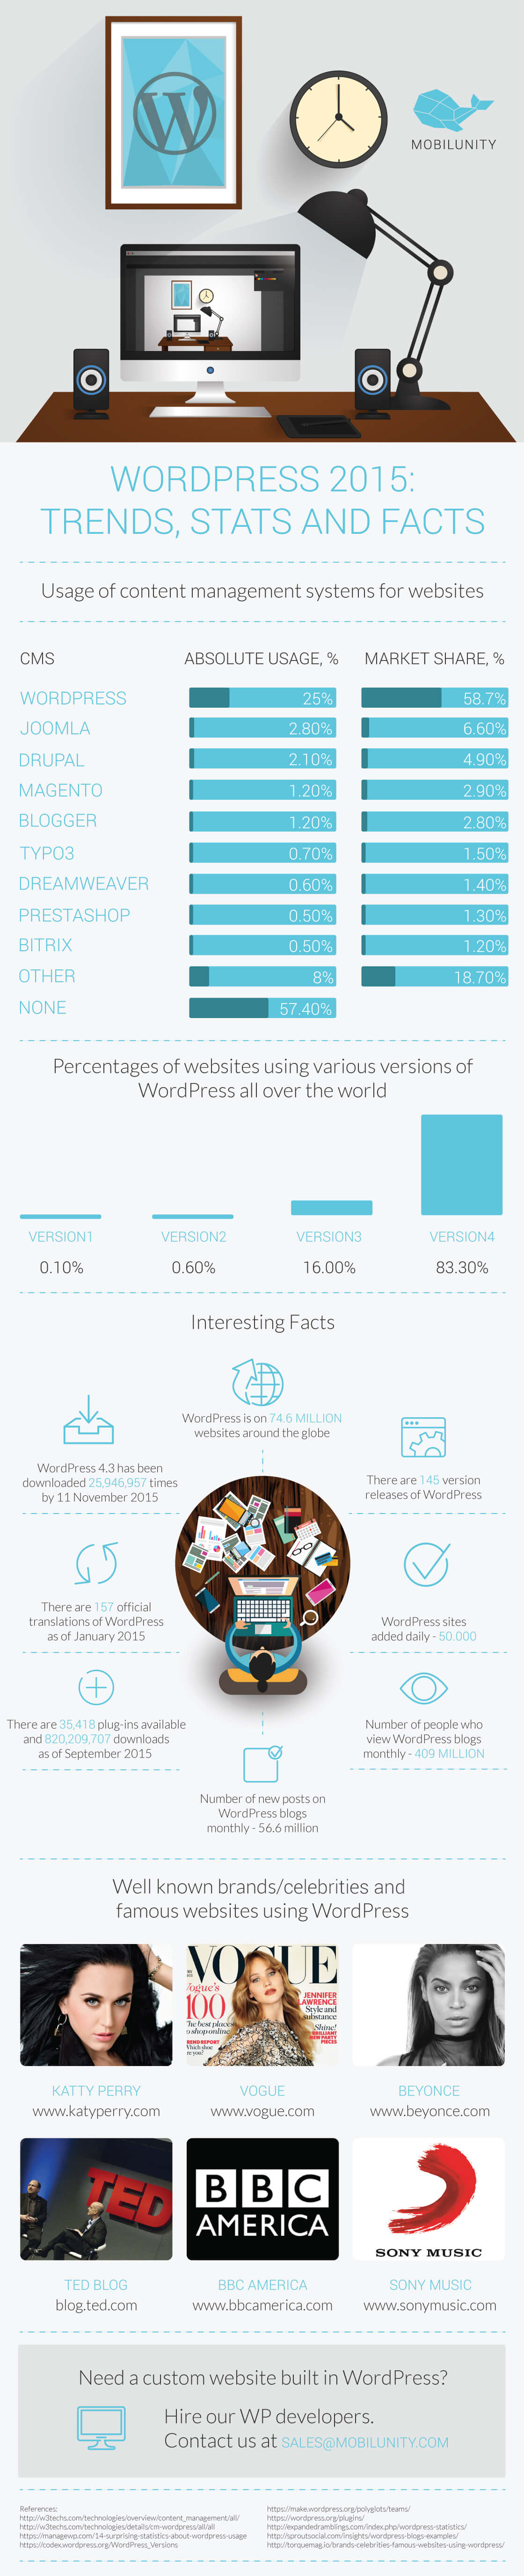 WordPress 2015 Trends Stats and Facts